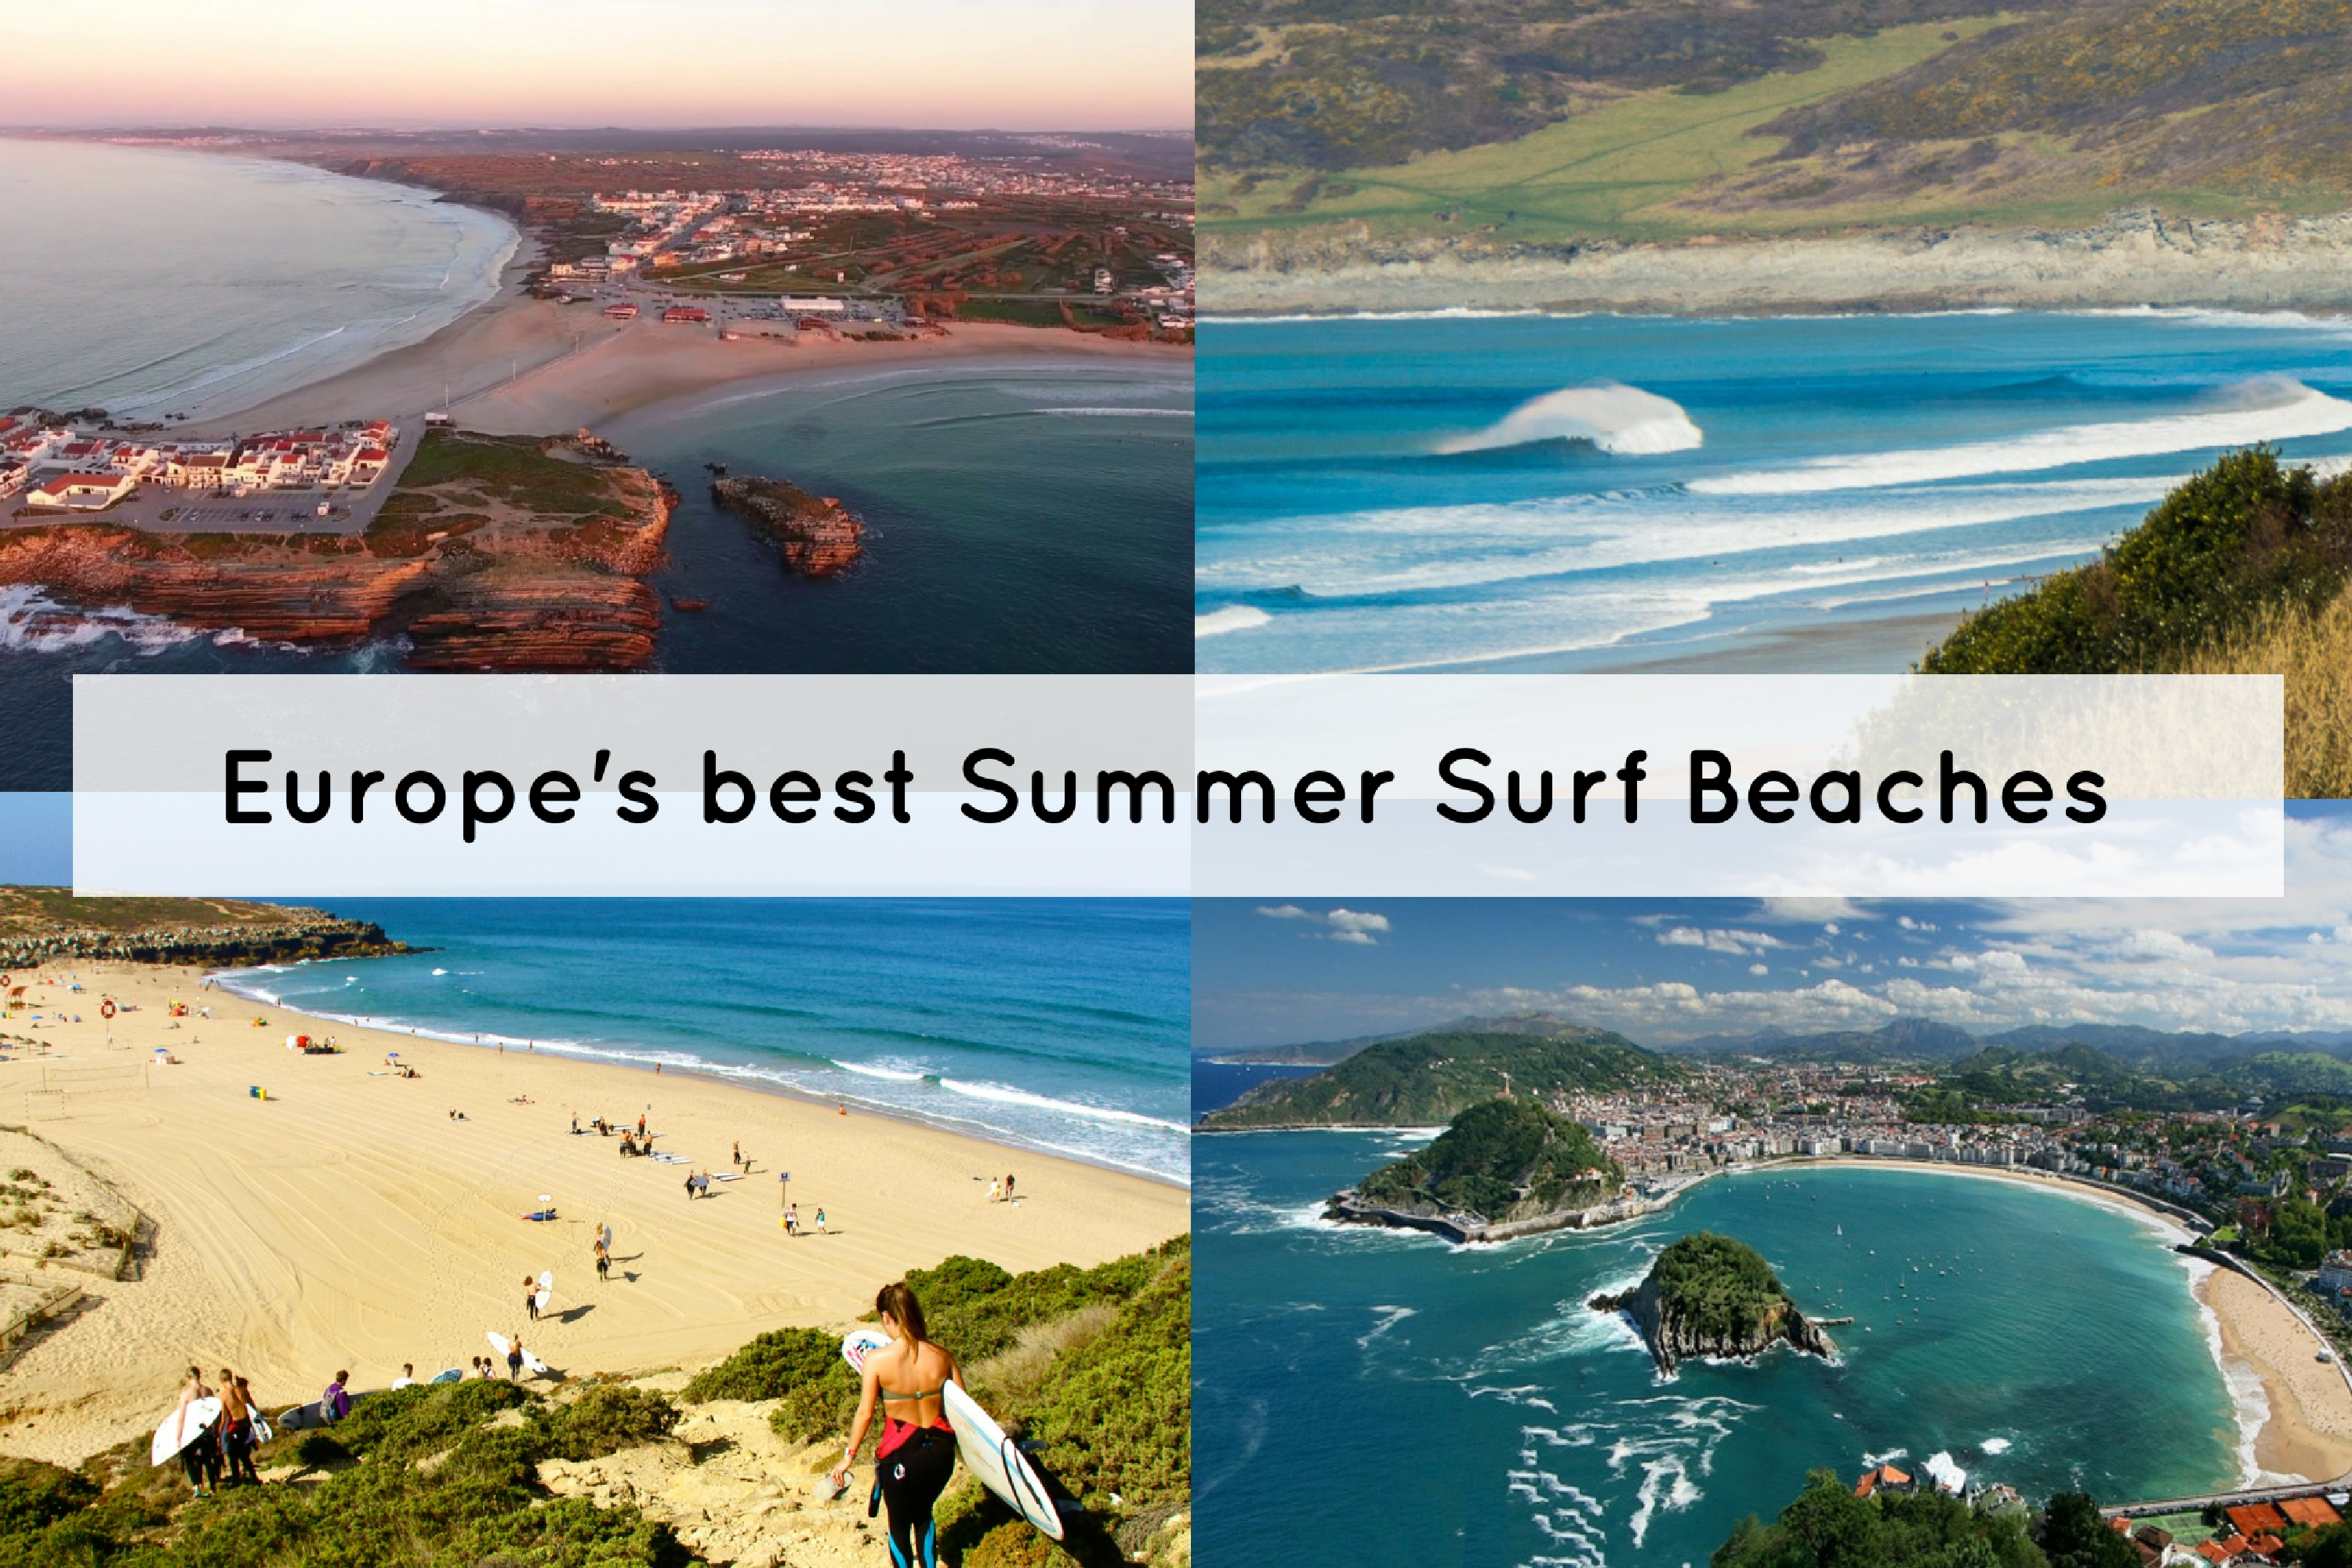 Top 7 Summer Surf Beaches in Europe